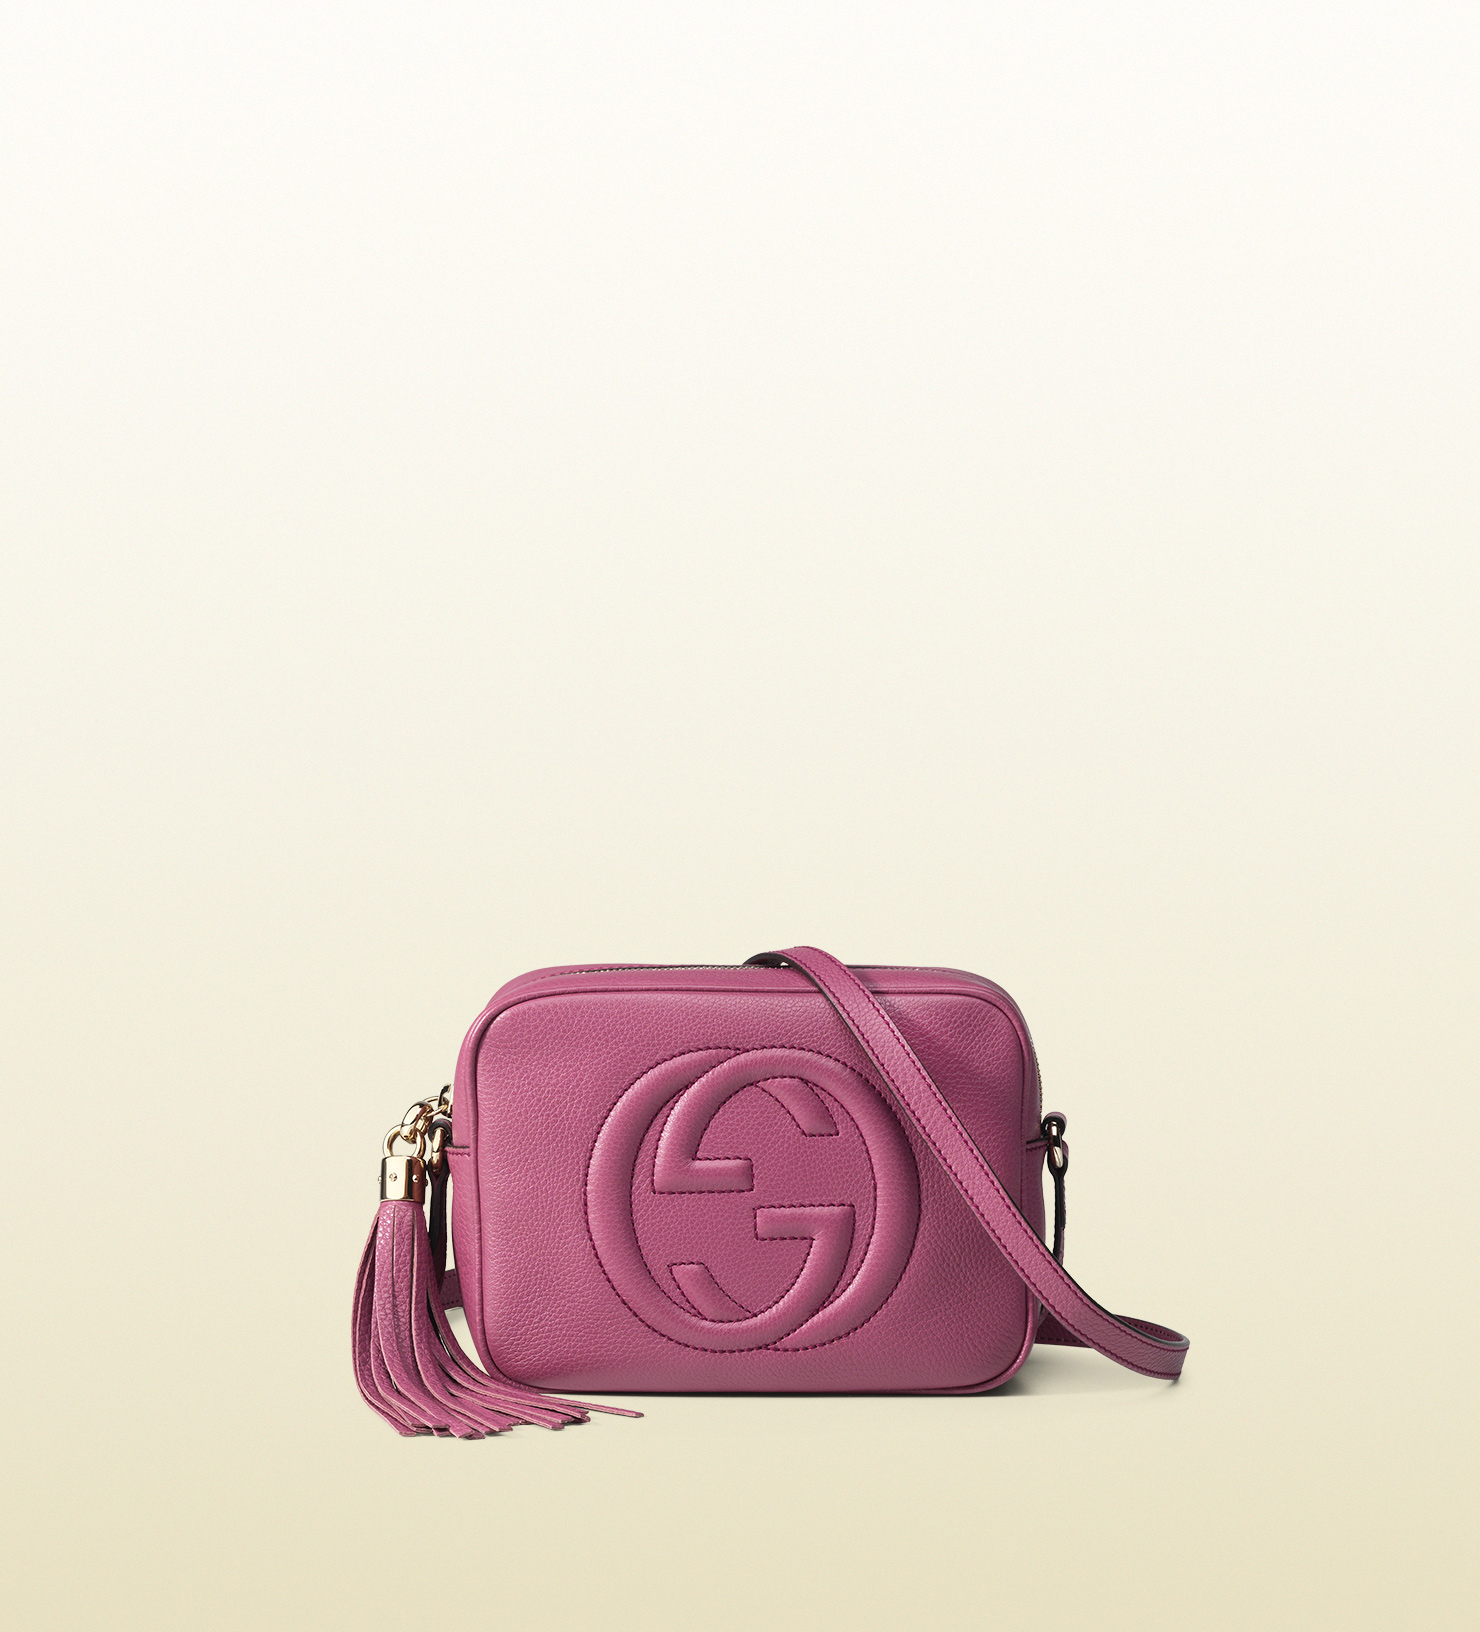 2bd5eaf4f70 Gucci Soho Leather Disco Bag in Pink - Lyst